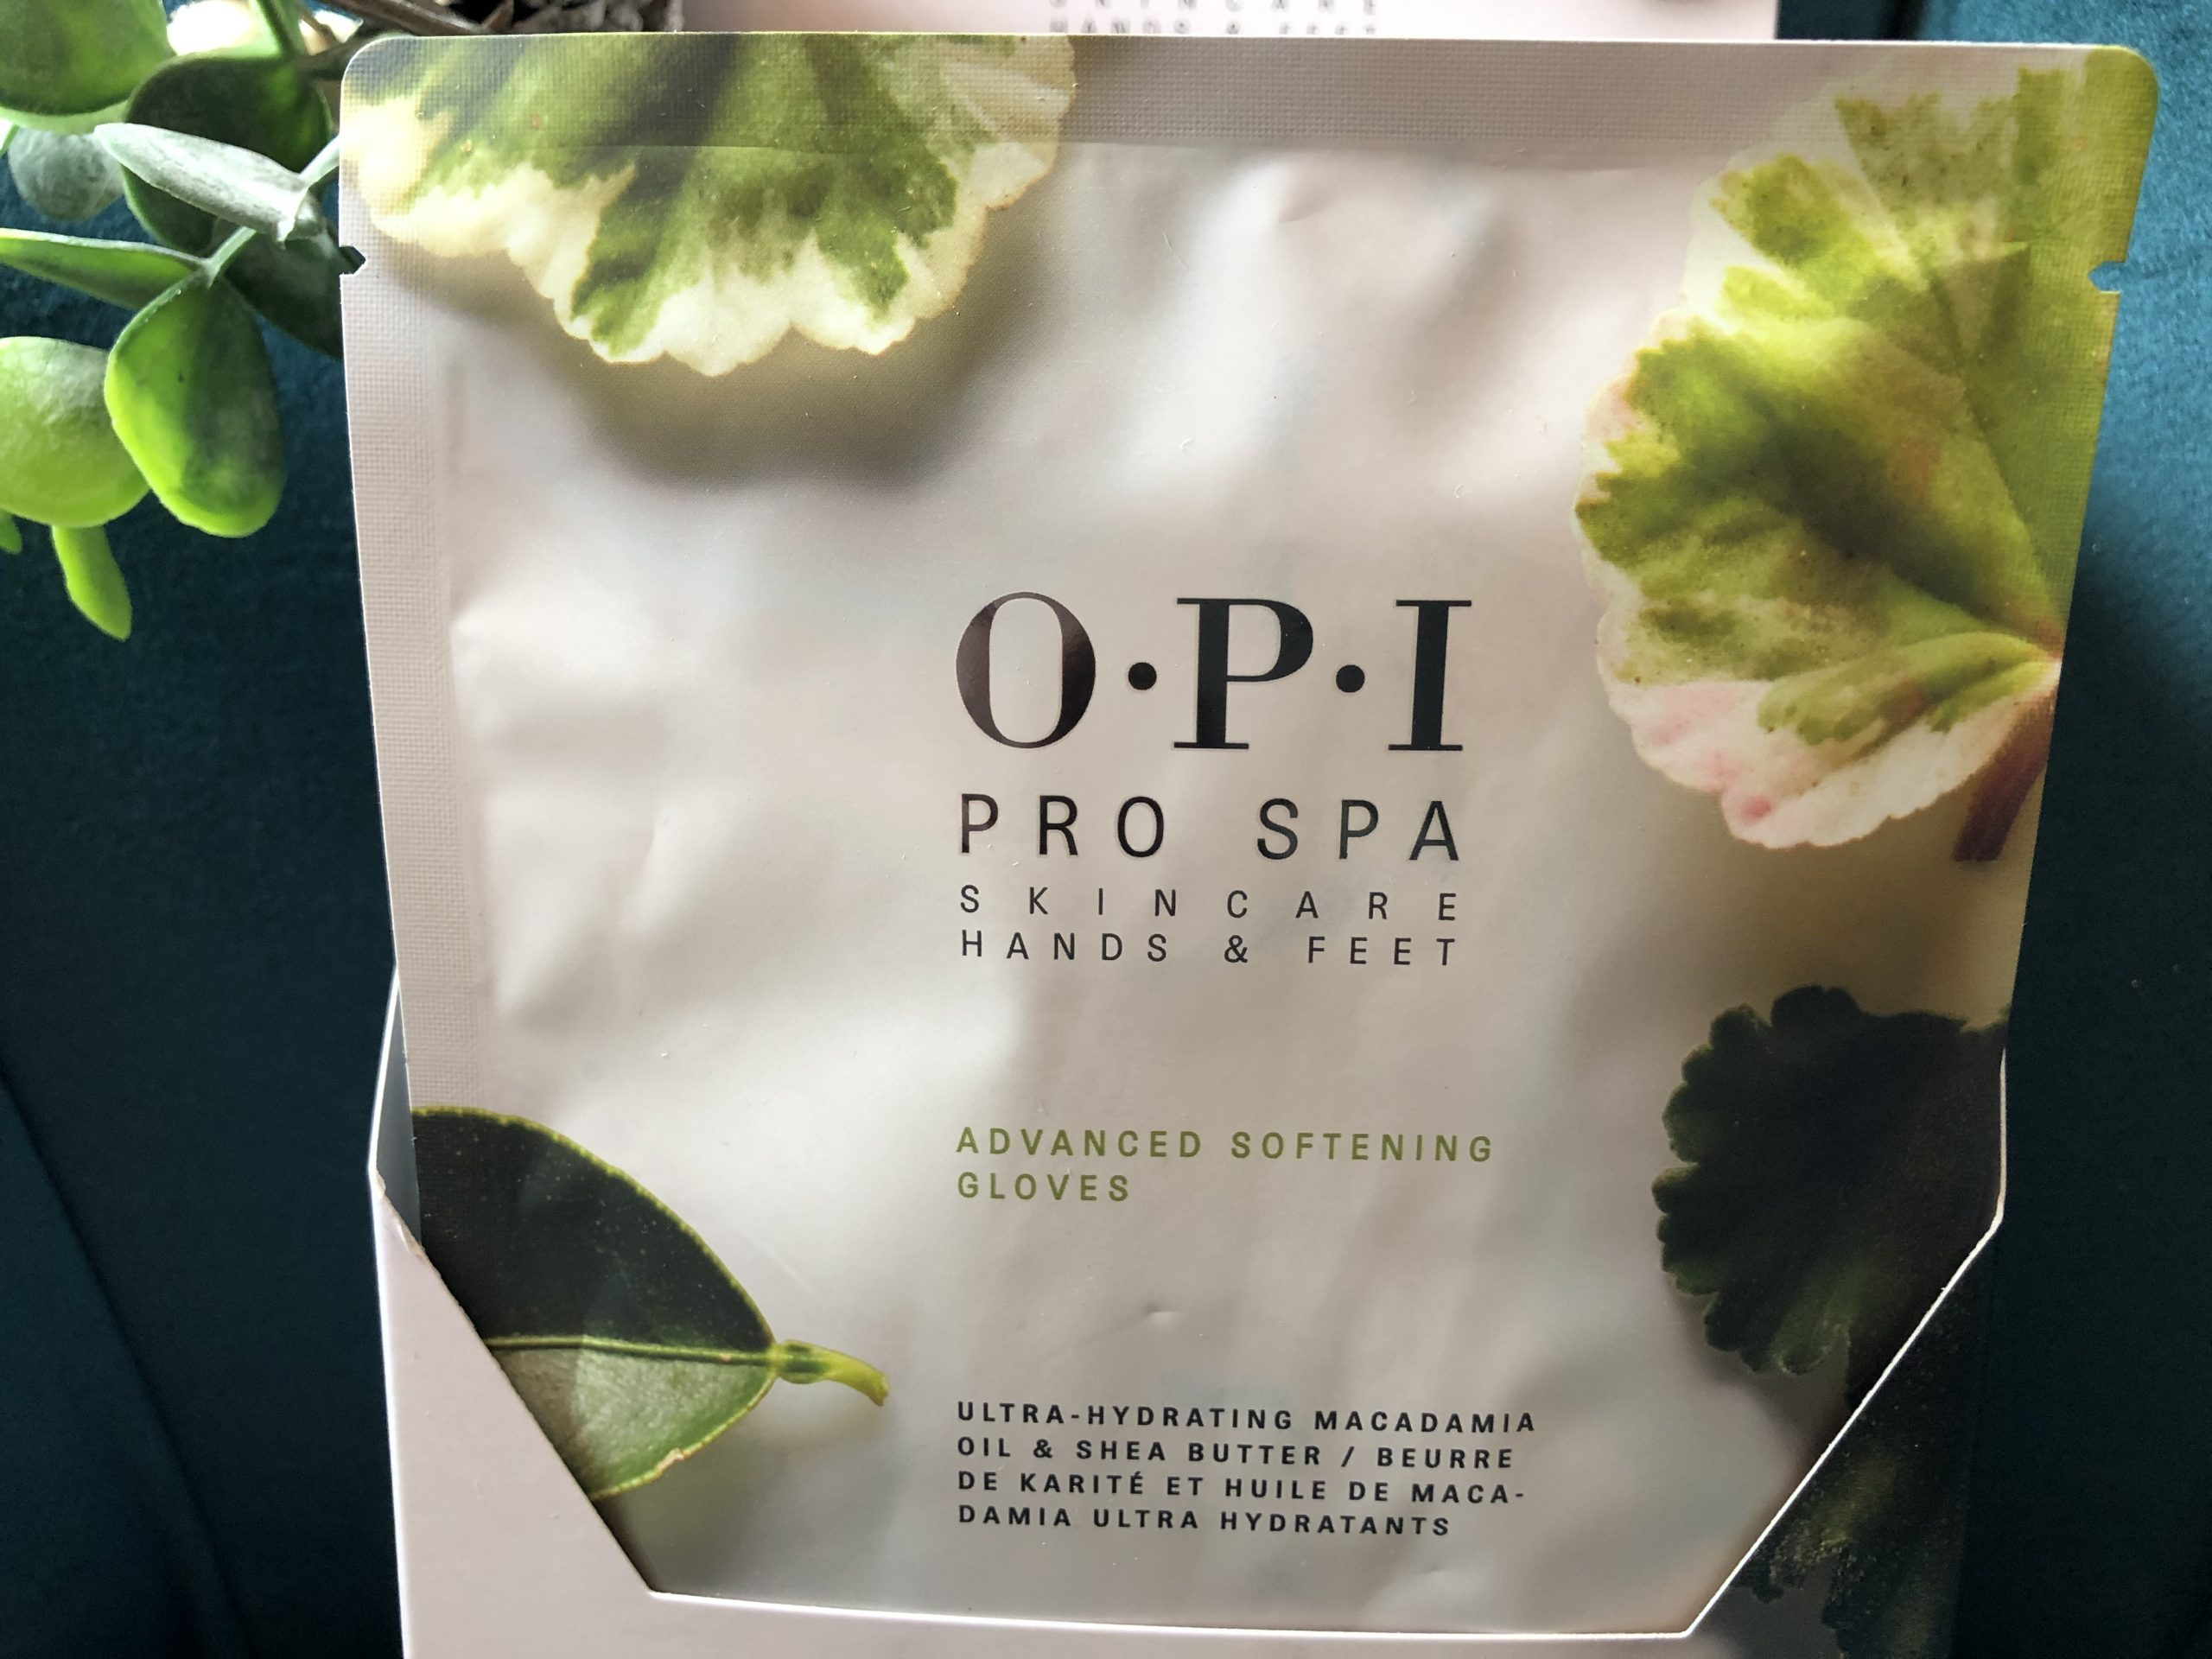 OPI hand conditioning gloves